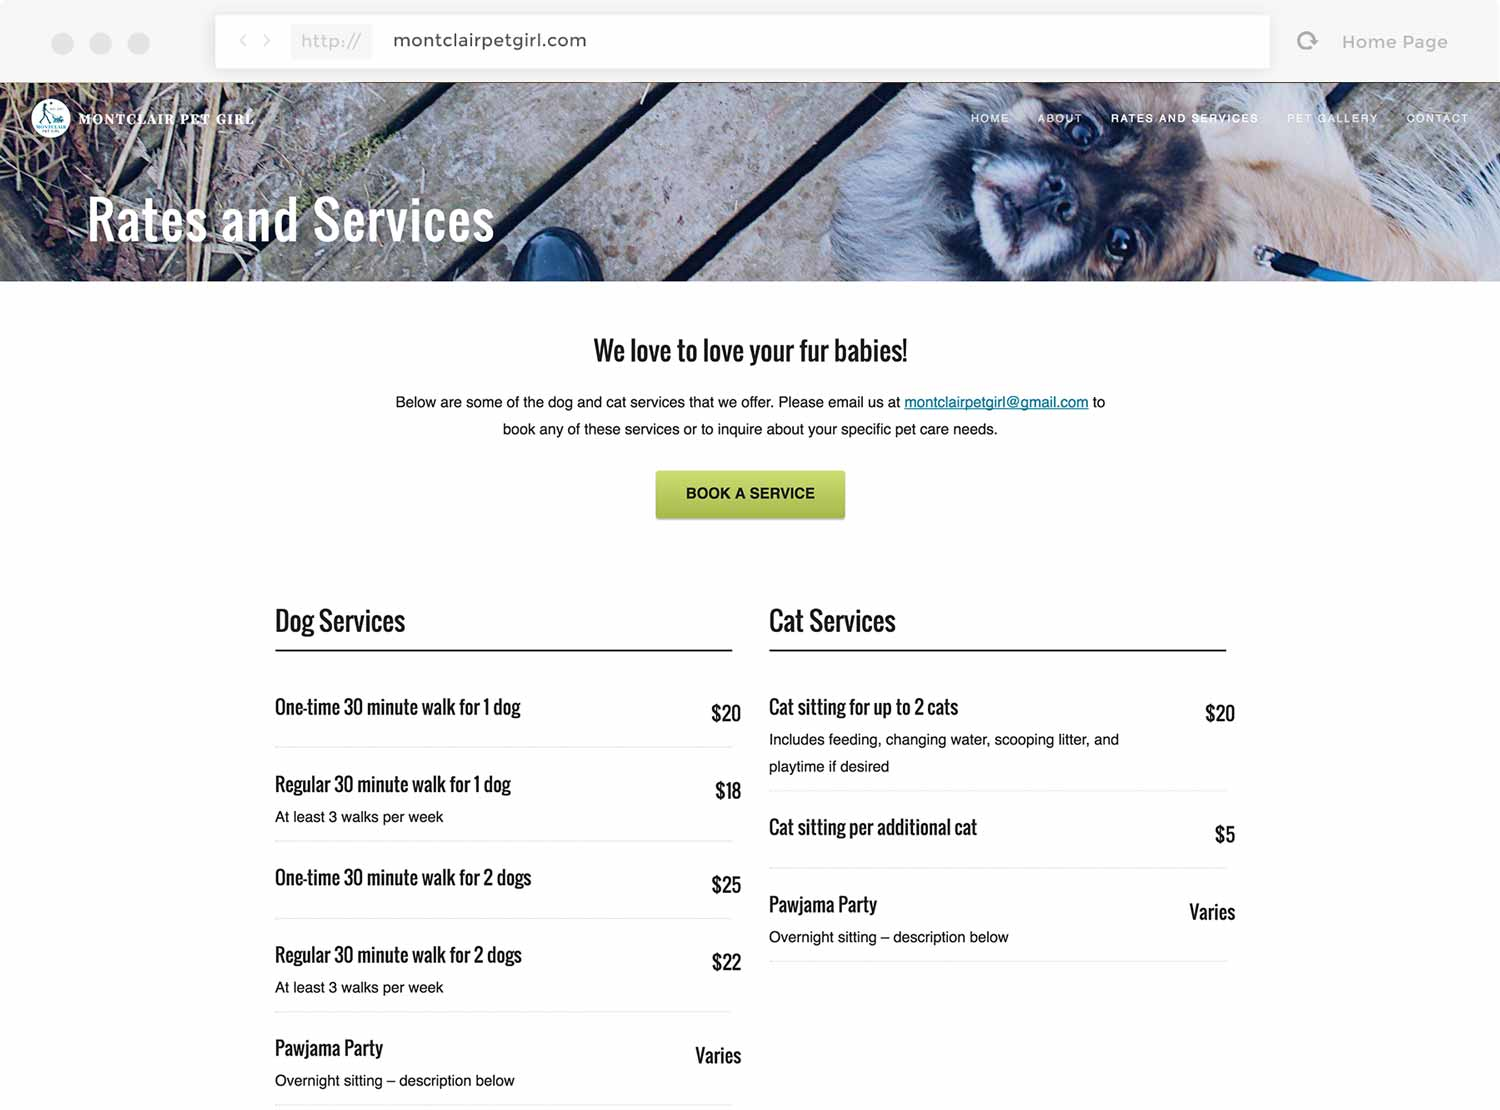 Screenshot of the Rates and Services page on montclairpetgirl.com